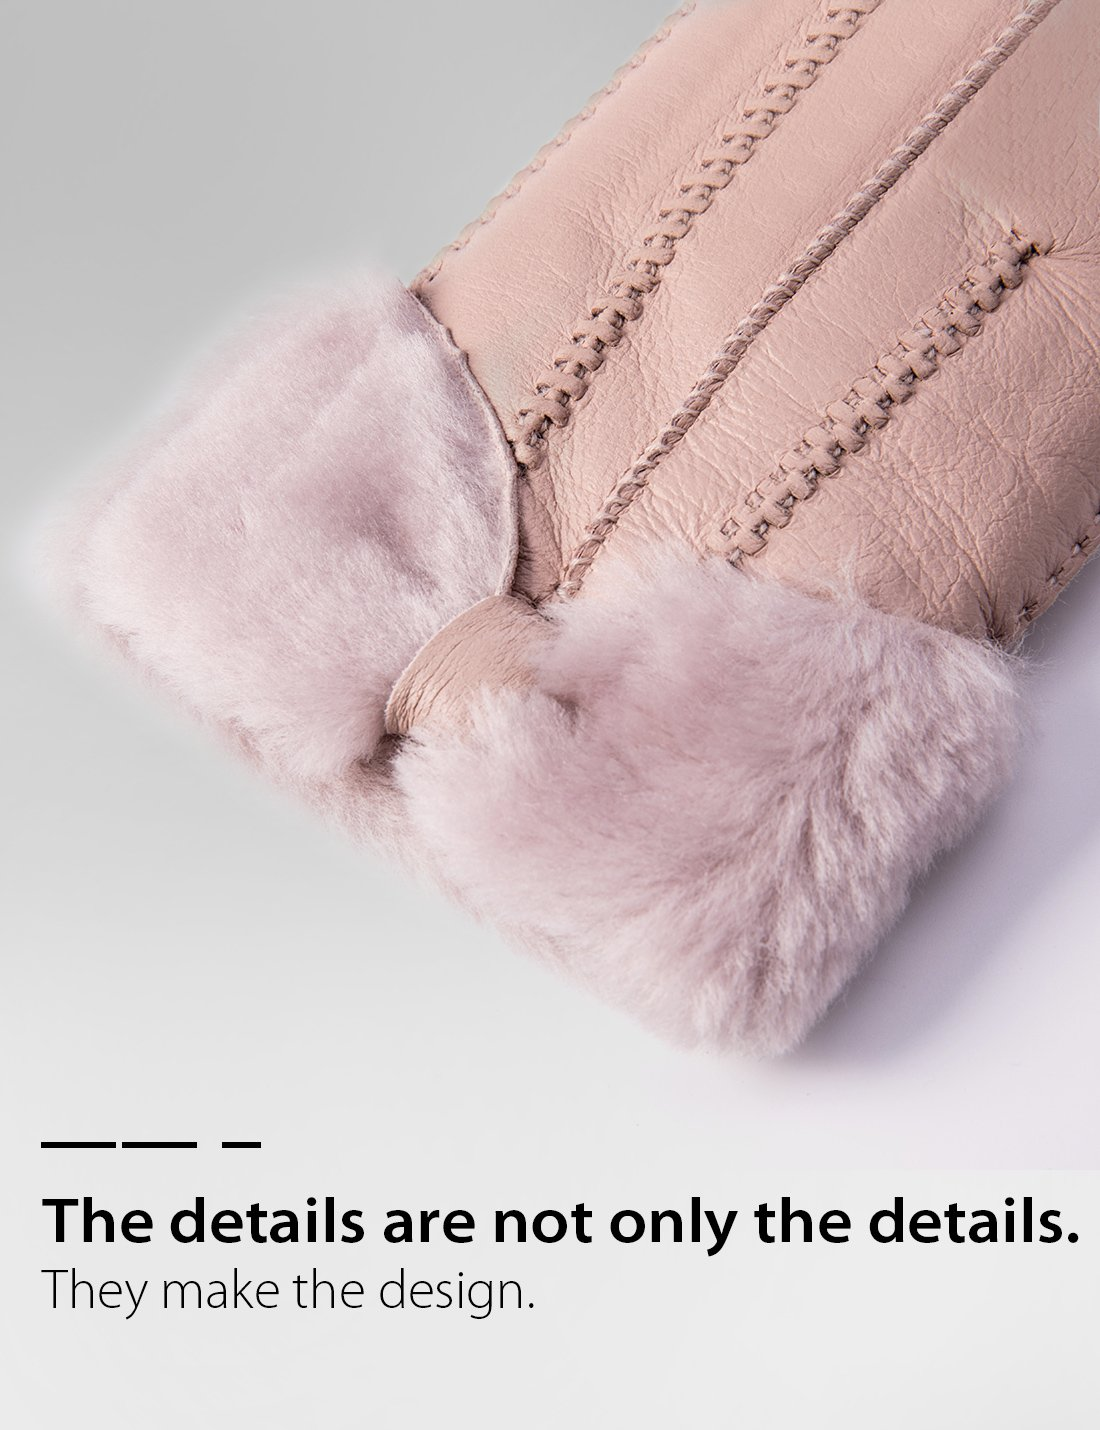 YISEVEN Women's Rugged Sheepskin Shearling Leather Gloves Three Points and Wing Cuffs Soft Thick Furry Fur Lined Warm Lining for Winter Cold Weather Heated Dress Driving Work Xmas Gifts, Pearl Pink S by YISEVEN (Image #5)